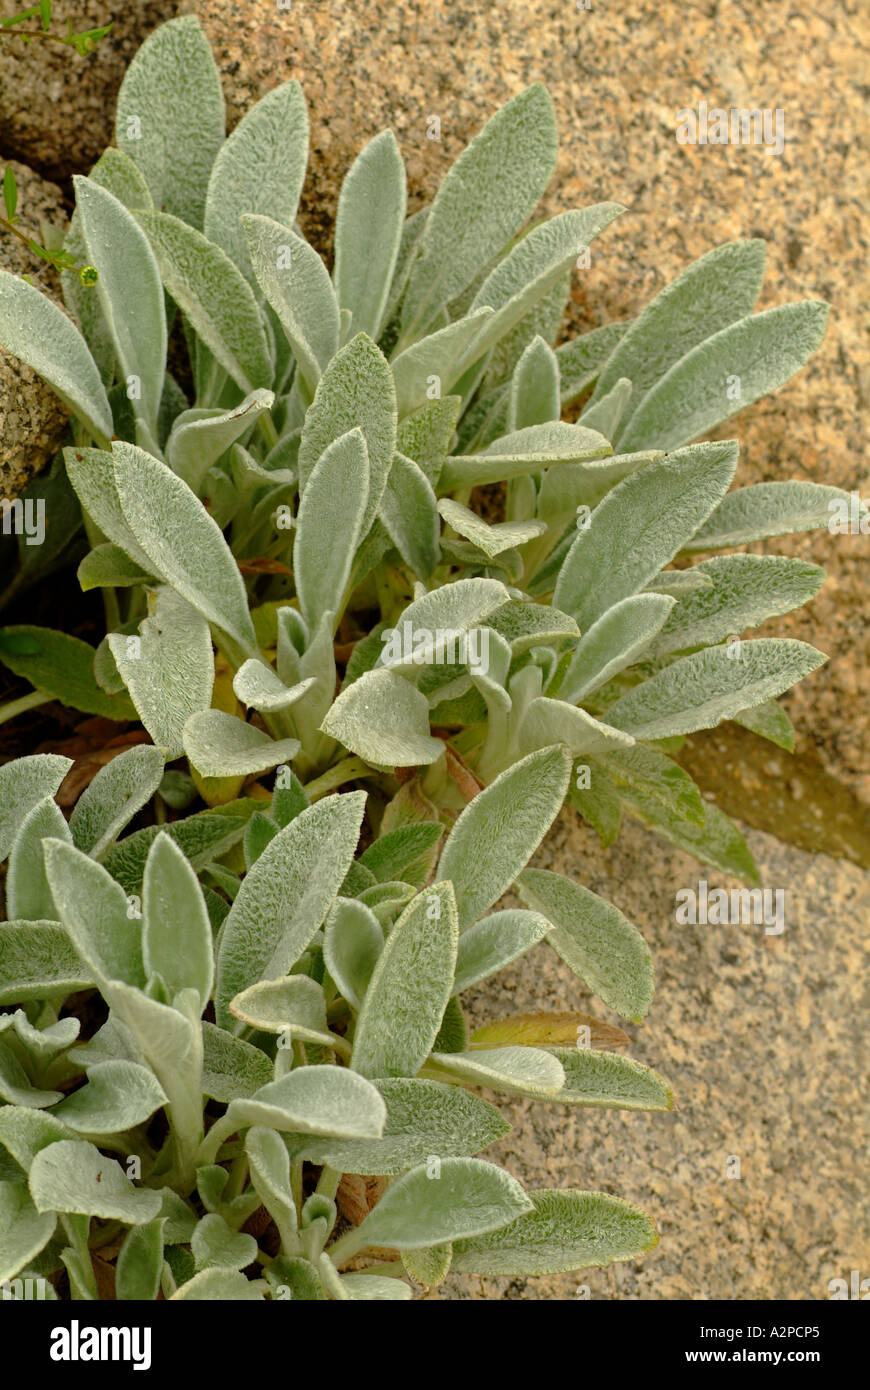 Lambs ear (Stachys spp) and rock in garden - Stock Image